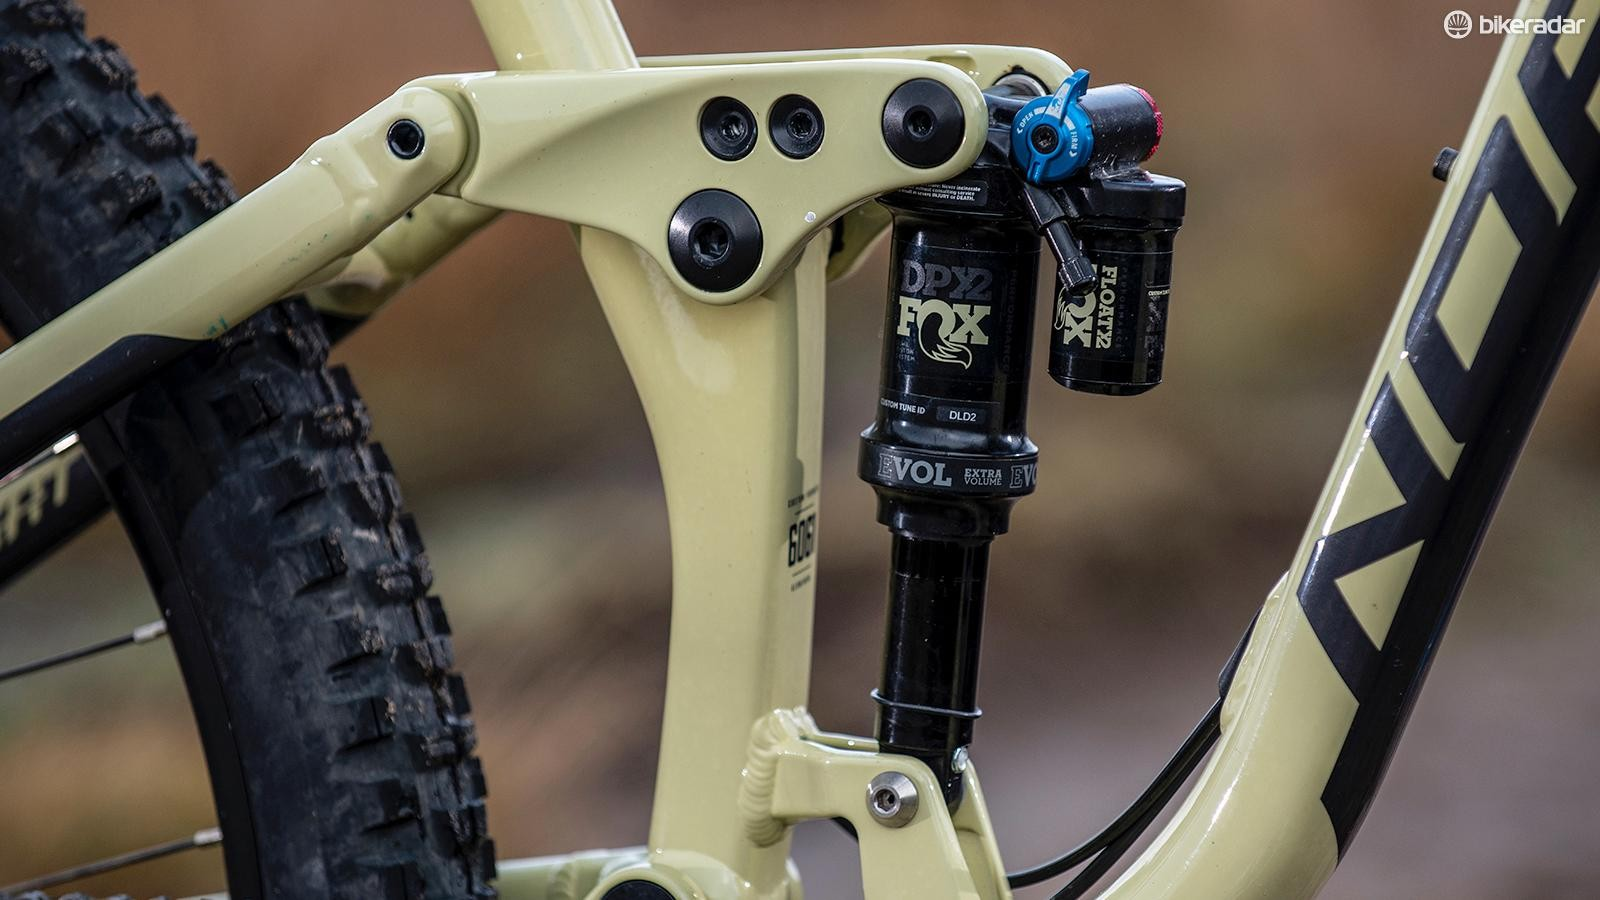 Fox's piggy-back DPX2 shock remains consistent on long runs